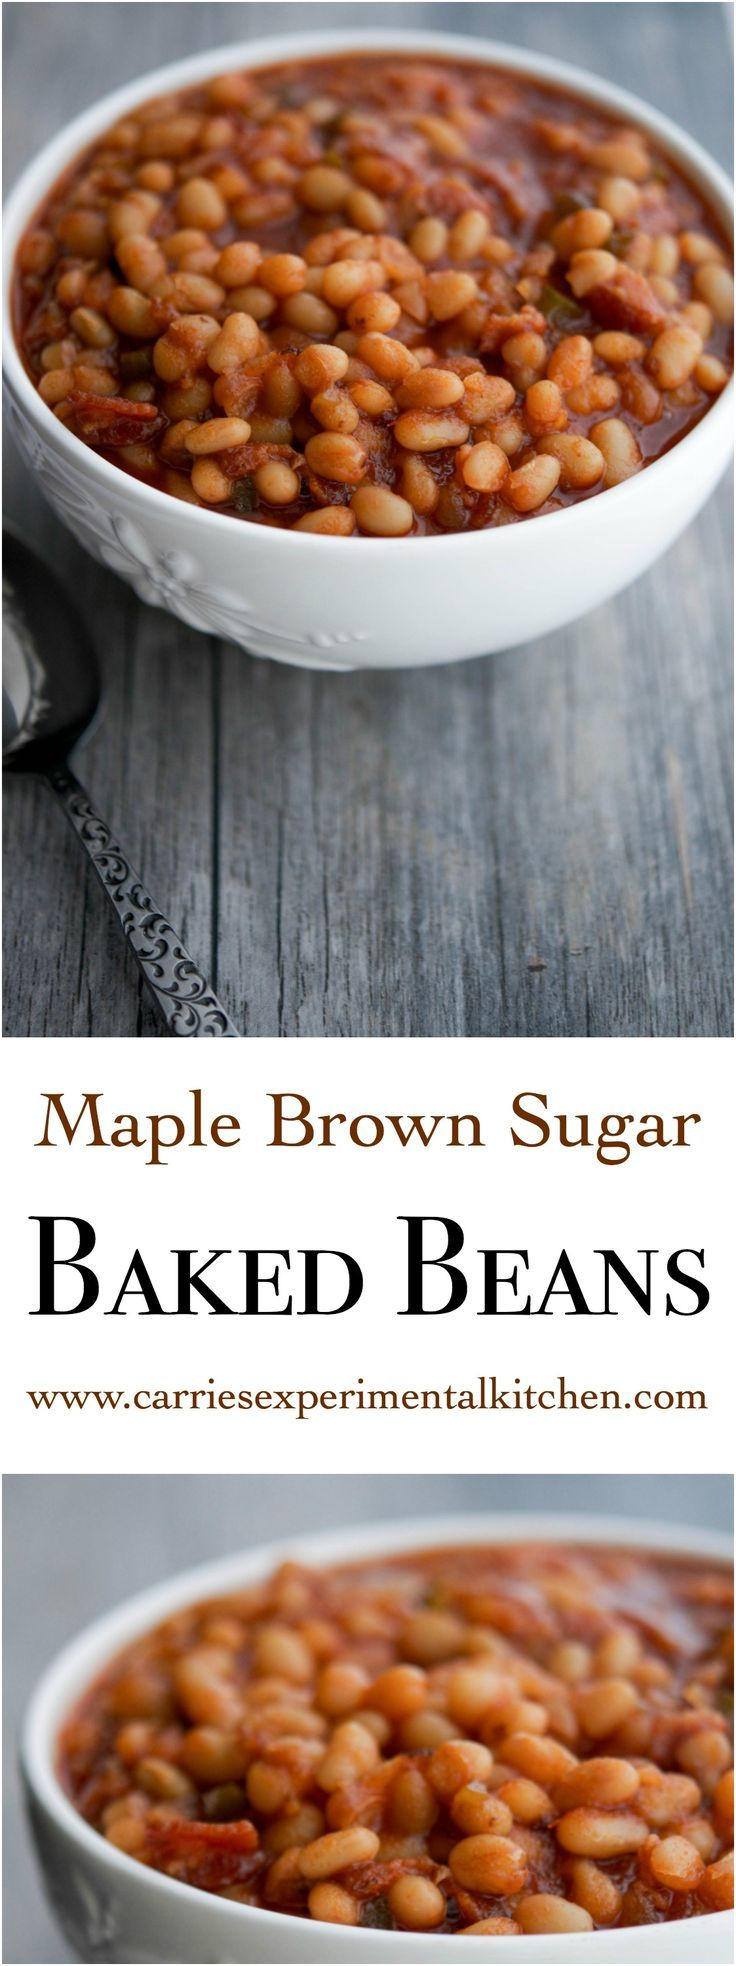 These Maple Brown Sugar Baked Beans made with navy beans, maple syrup, brown sugar, peppers and onions are the perfect addition to your Summer BBQ plans.